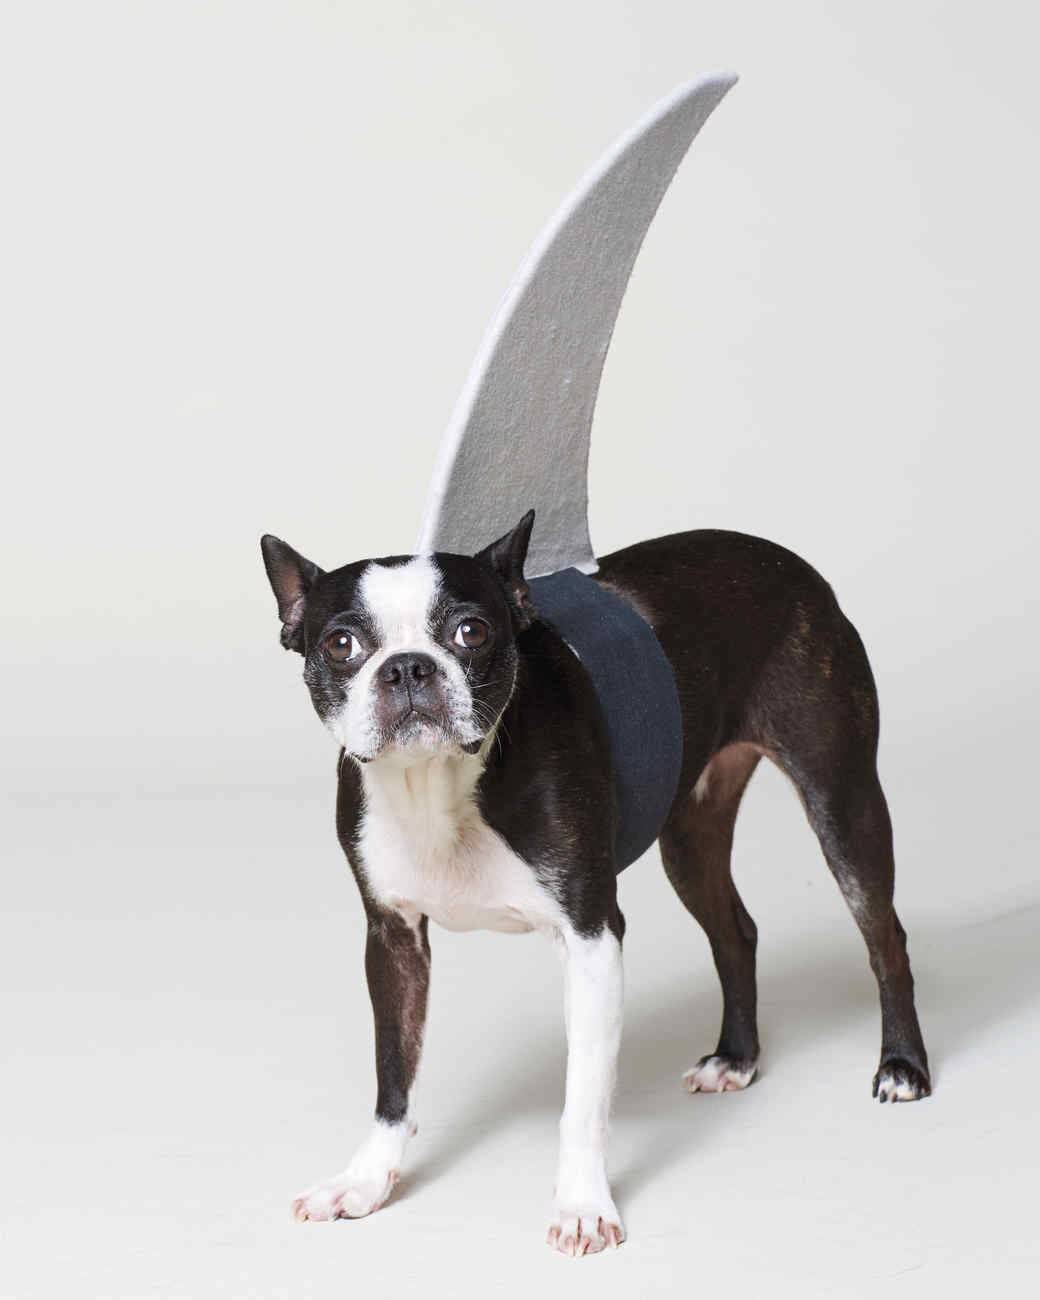 Shark Halloween dog costume